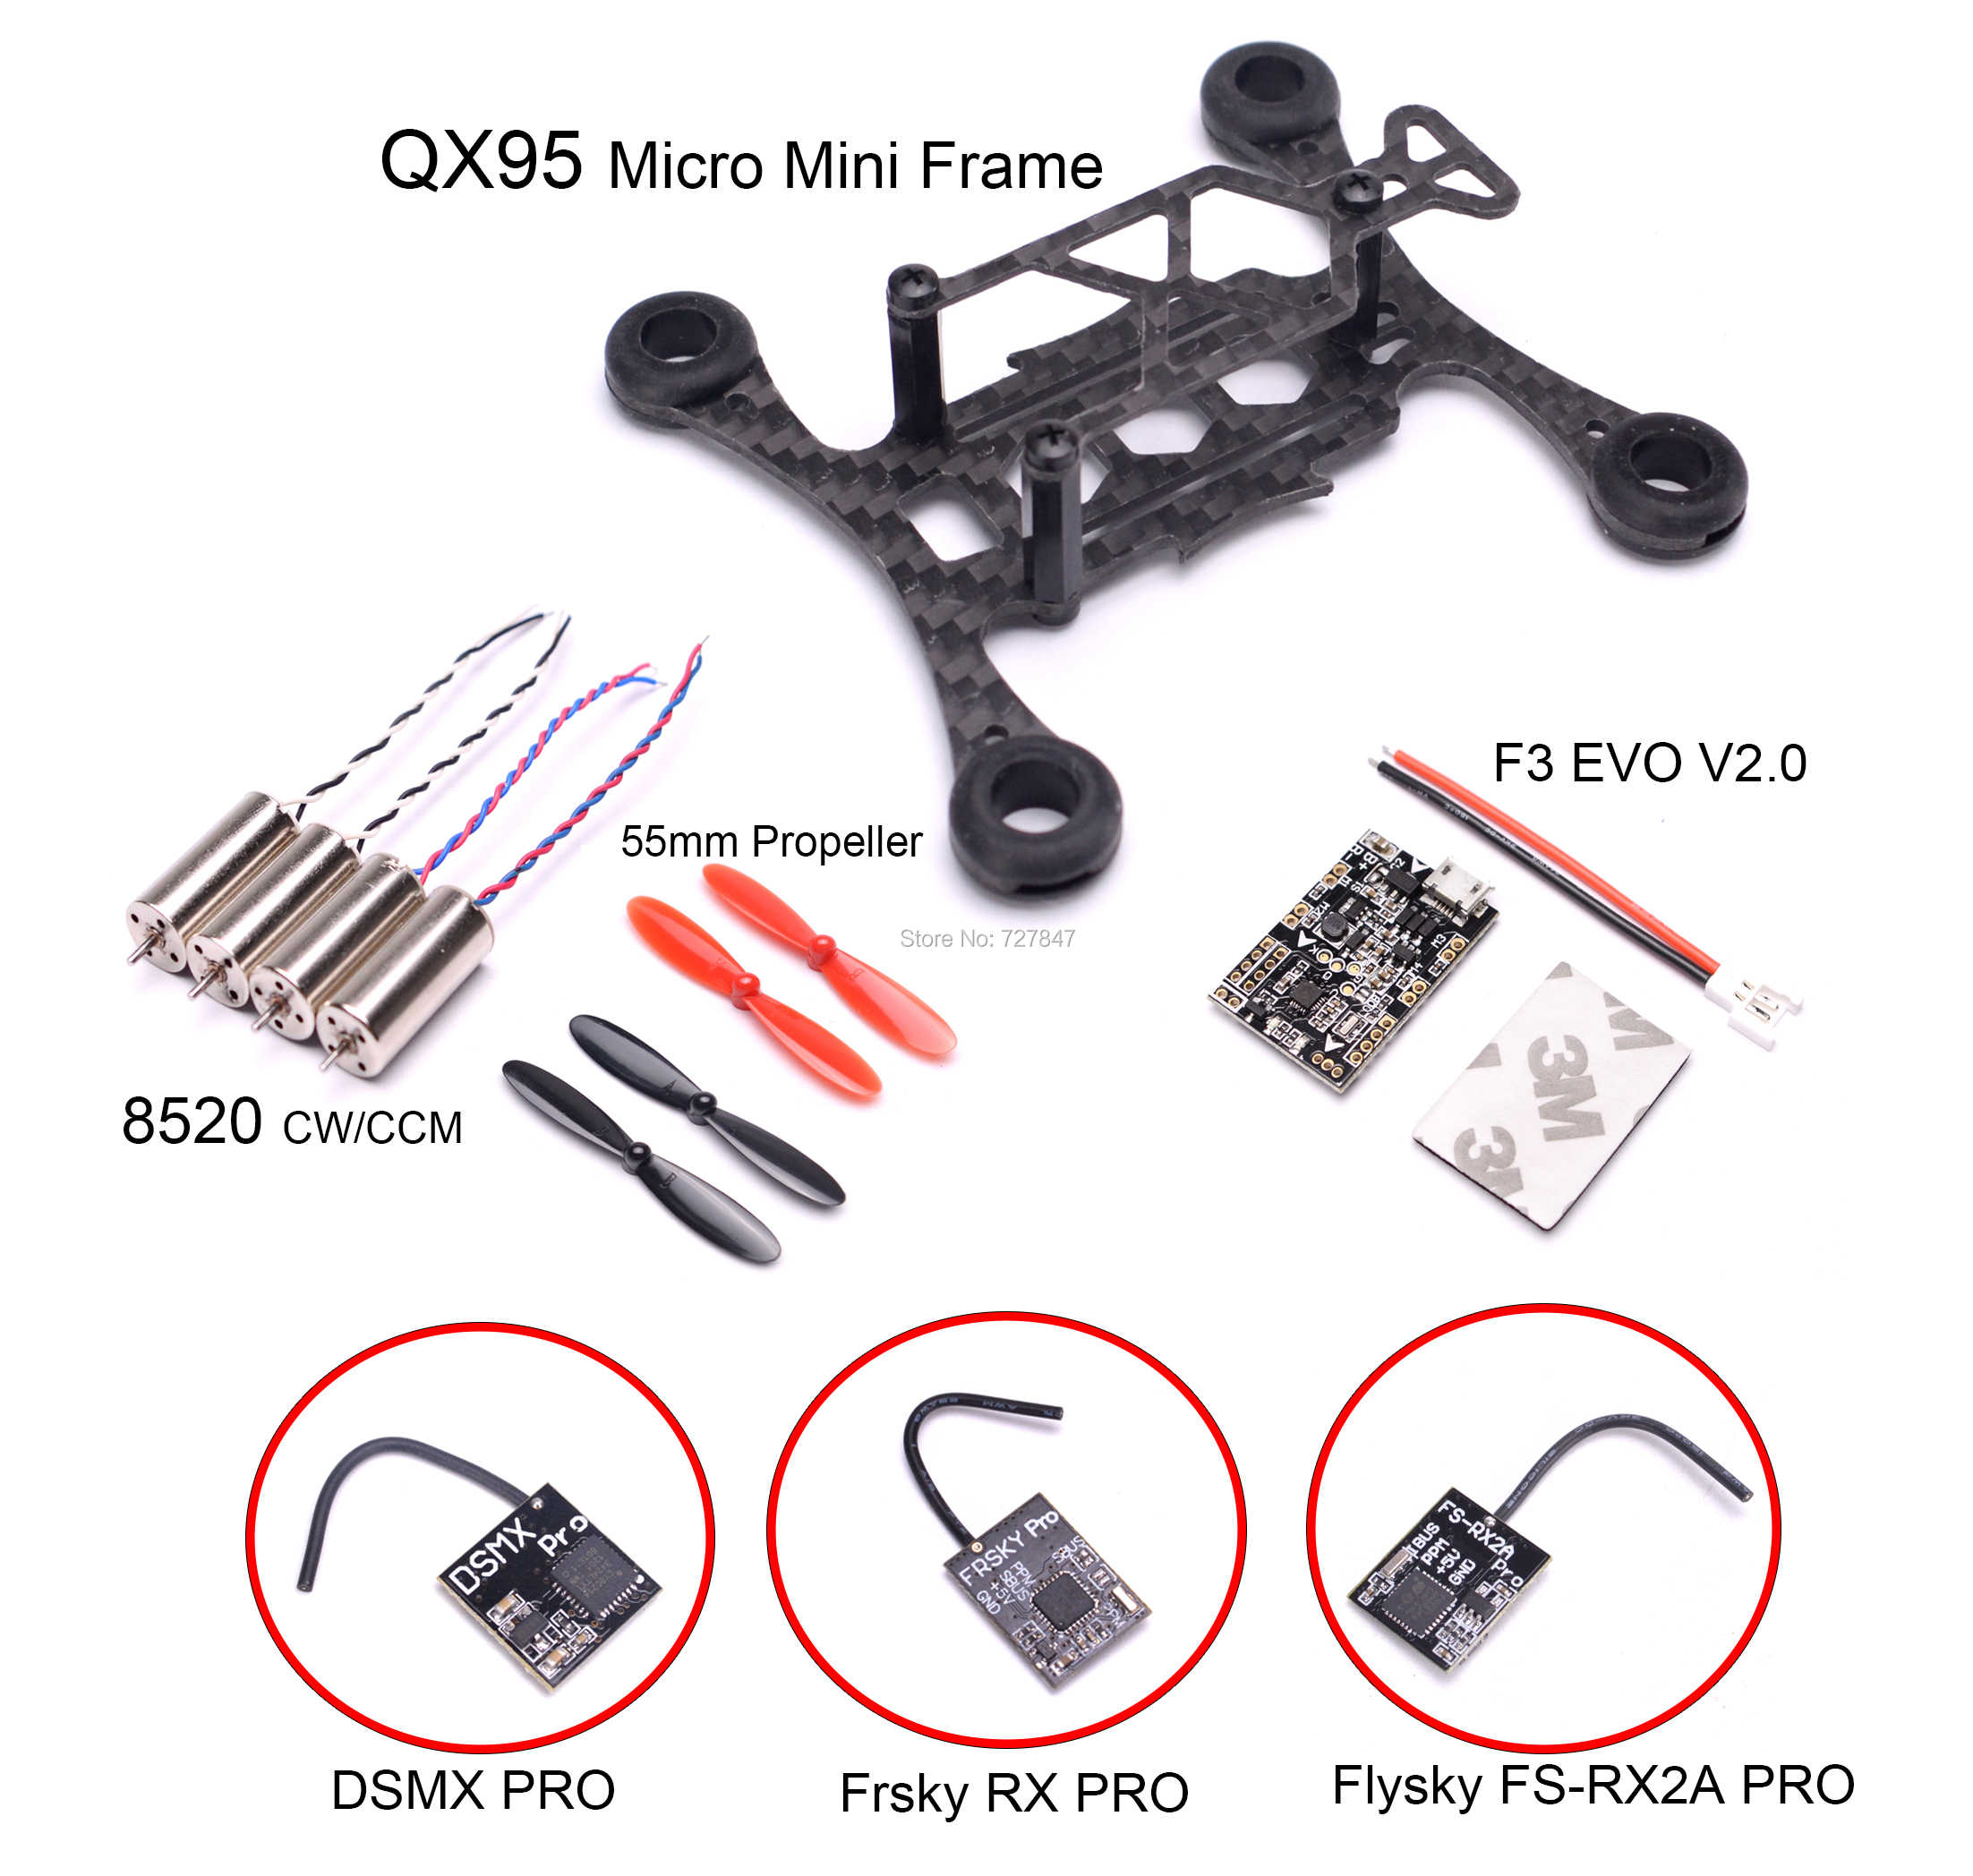 Micro mini QX95 95mm frame FPV RC Carbon Fiber 8520 Coreless Motor F3 EVO V2.0 Borstel Flight Control 55mm Prop Frsky RX Ontvanger